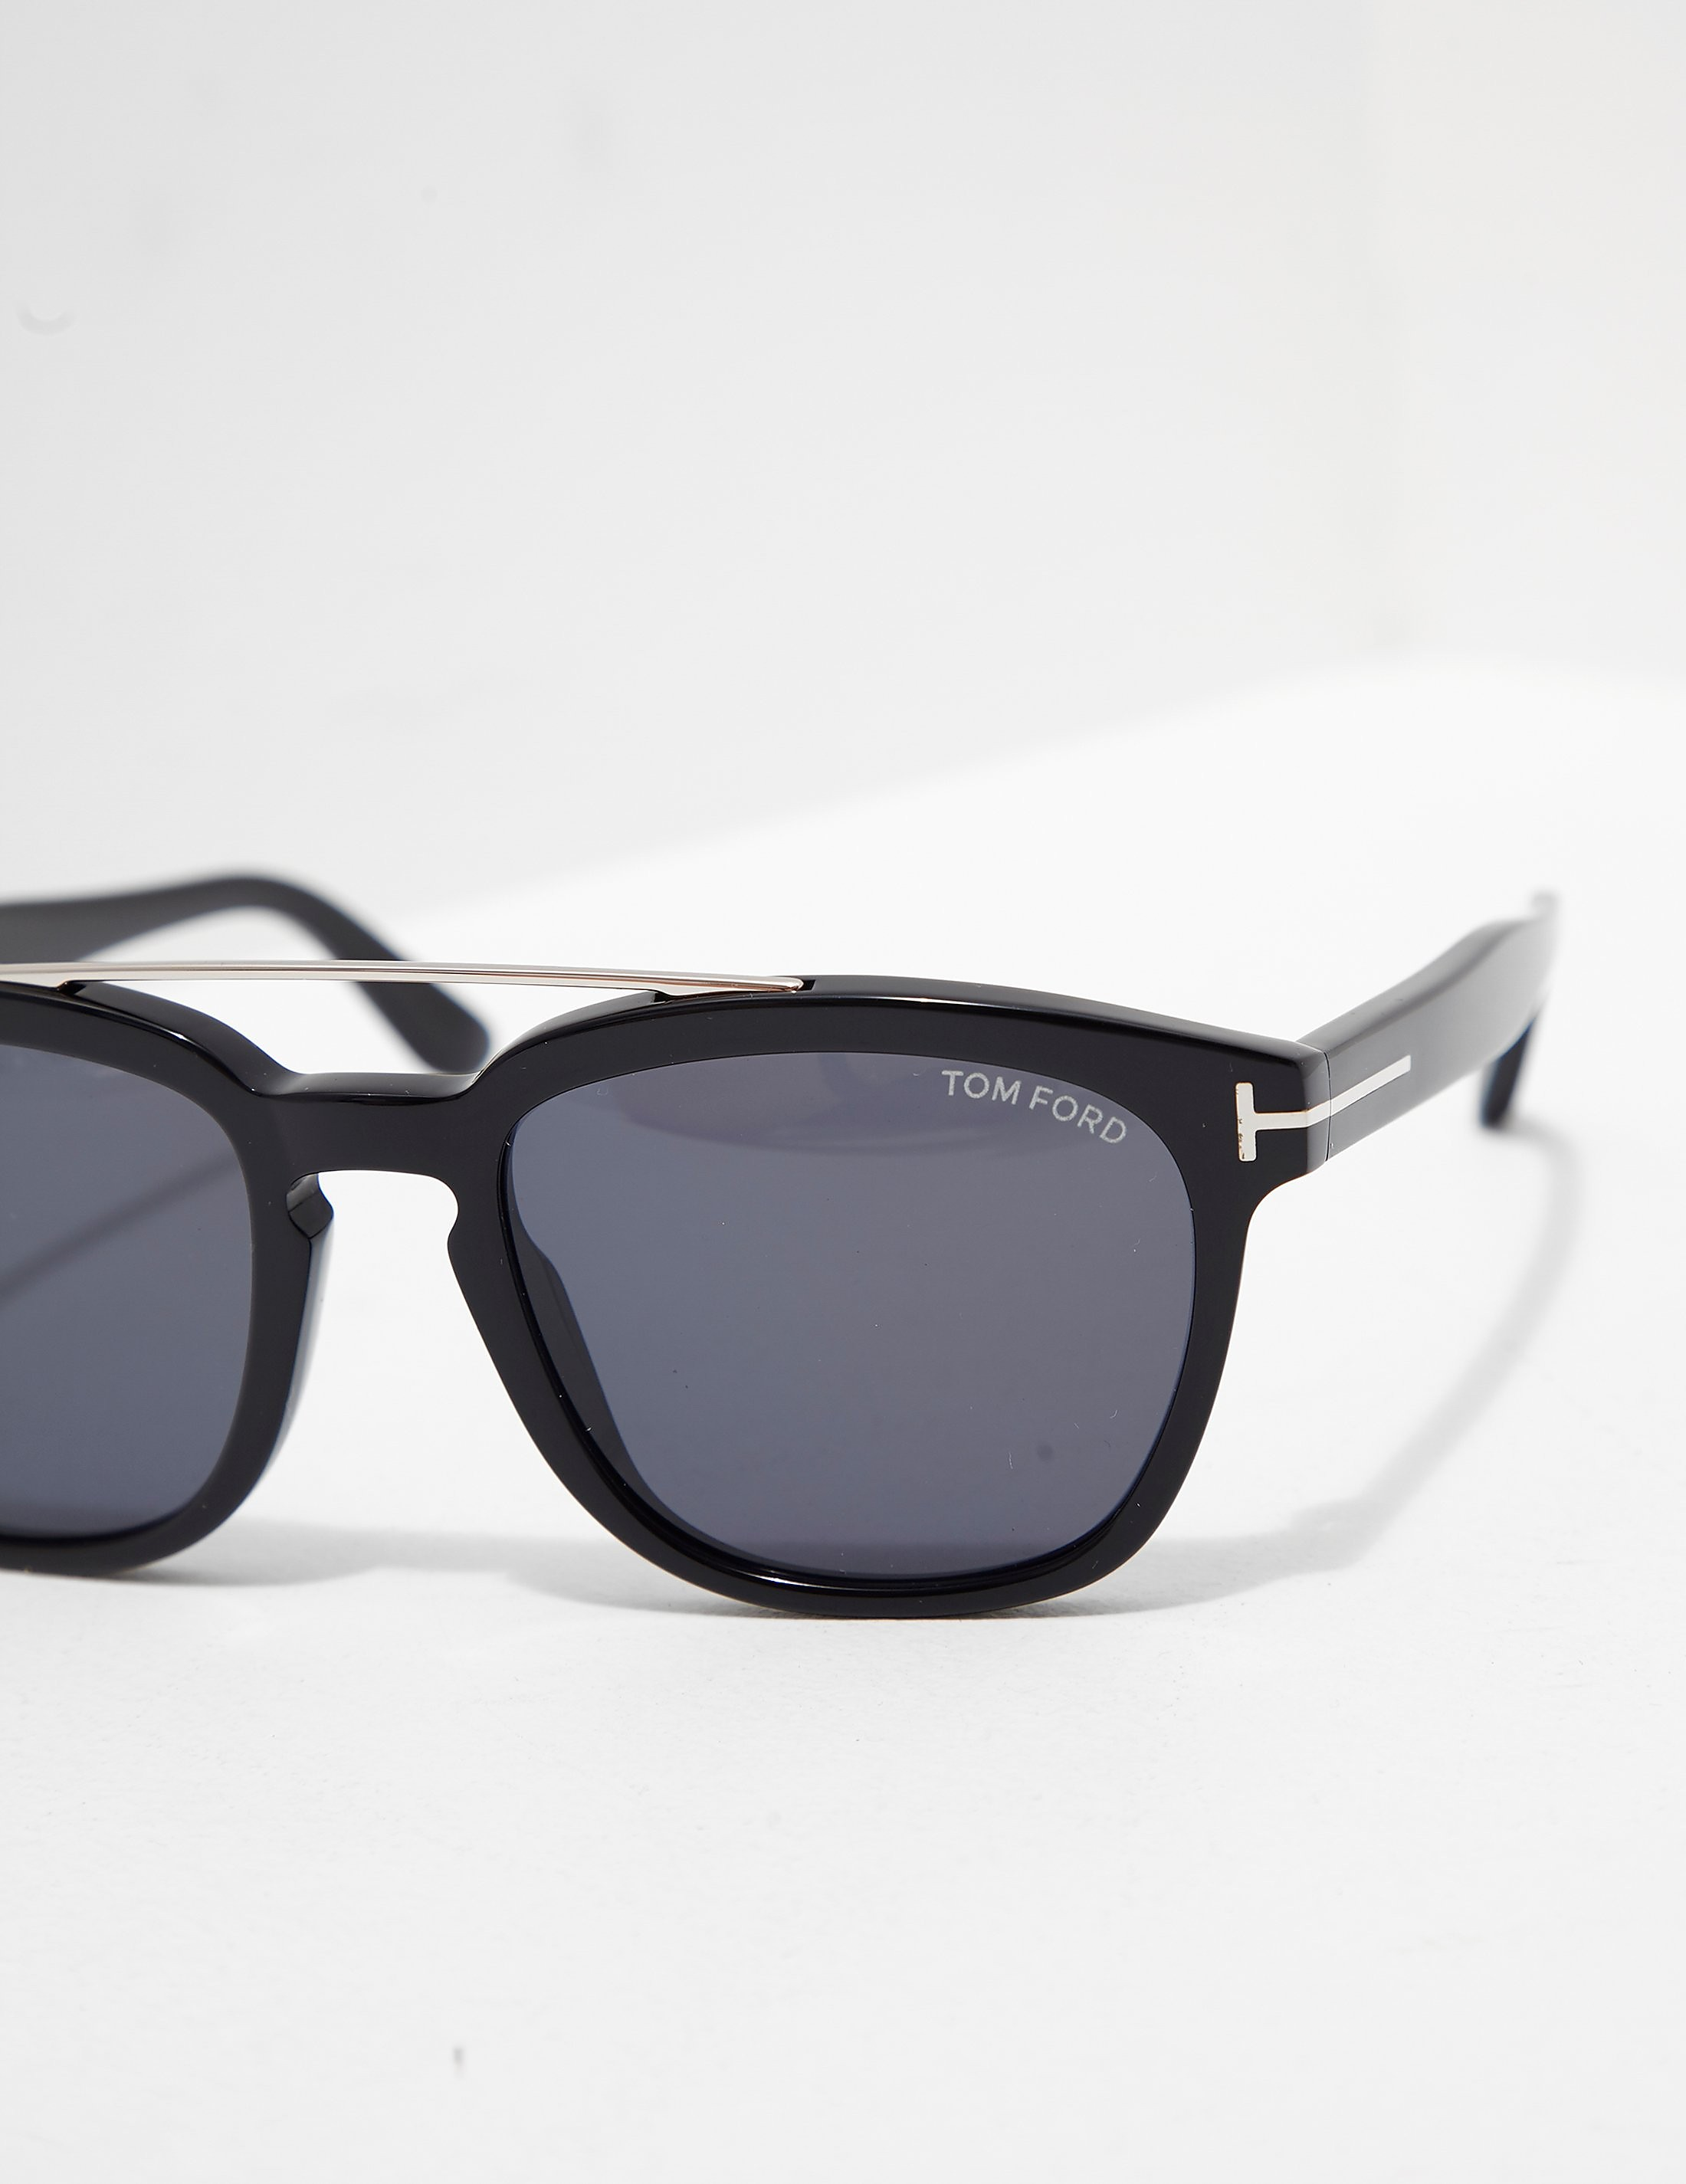 TOM FORD Holt Sunglasses